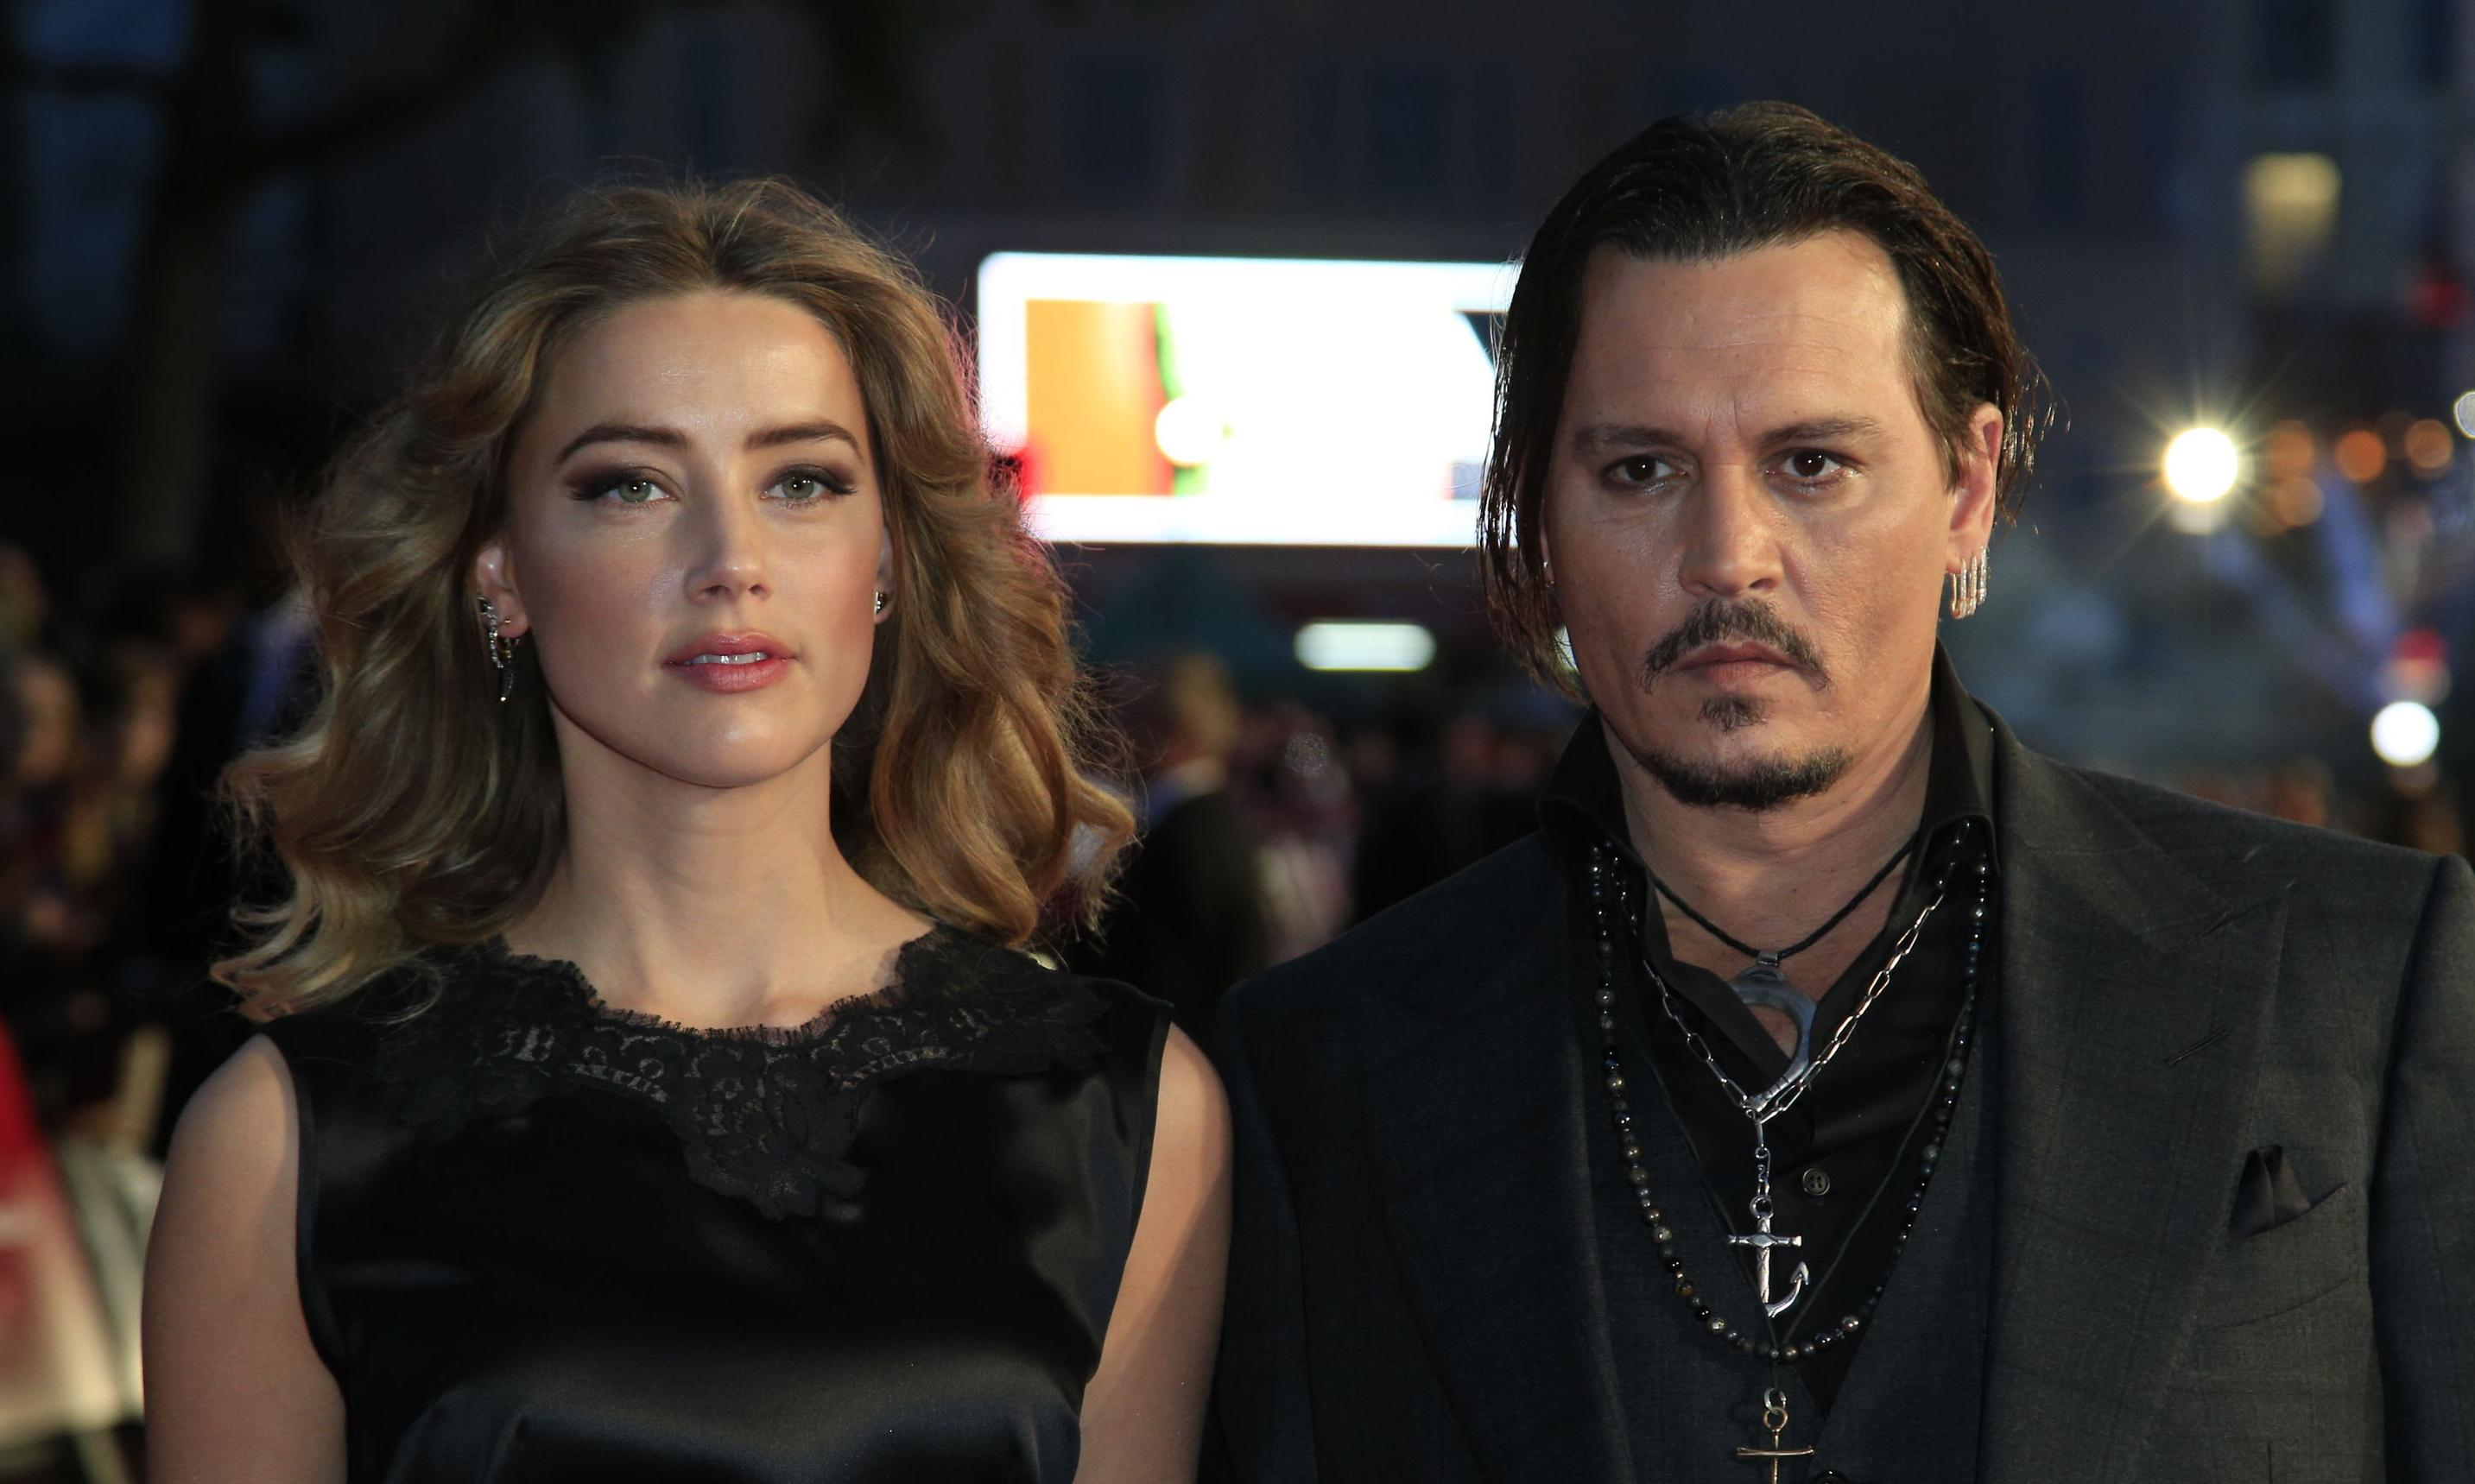 Johnny Depp accuses ex-wife Amber Heard of 'painting-on' bruises